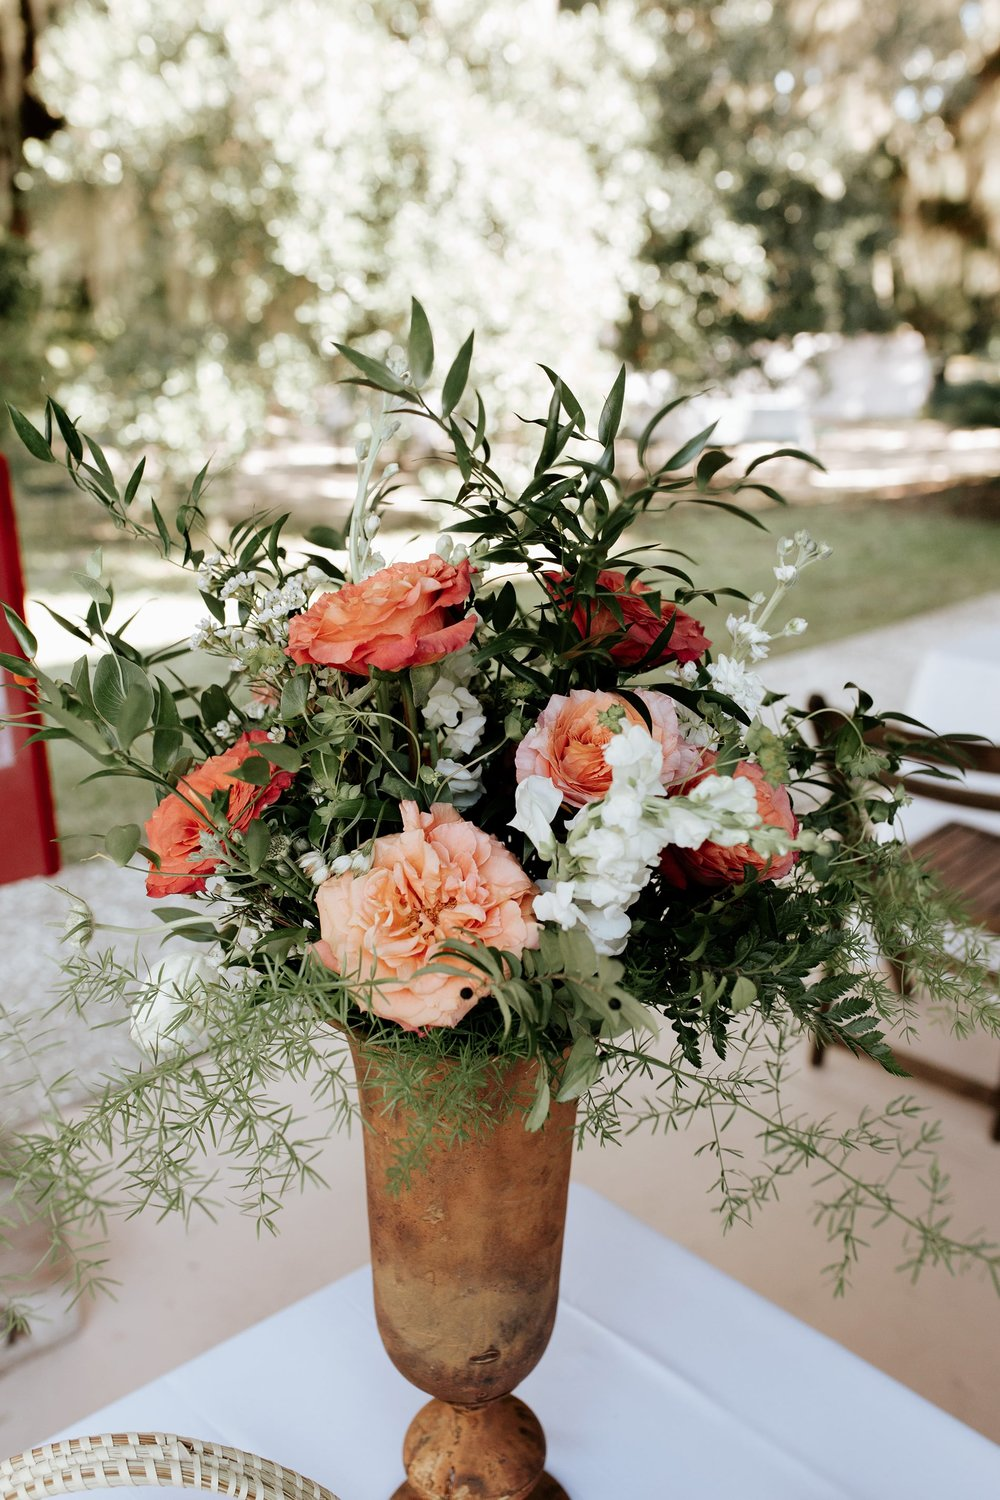 lowcountry-kitchen-catering-beaufort-sc-mary-grace-and-judd-kennedy-wedding-ceremony-flower-vase-min.jpg